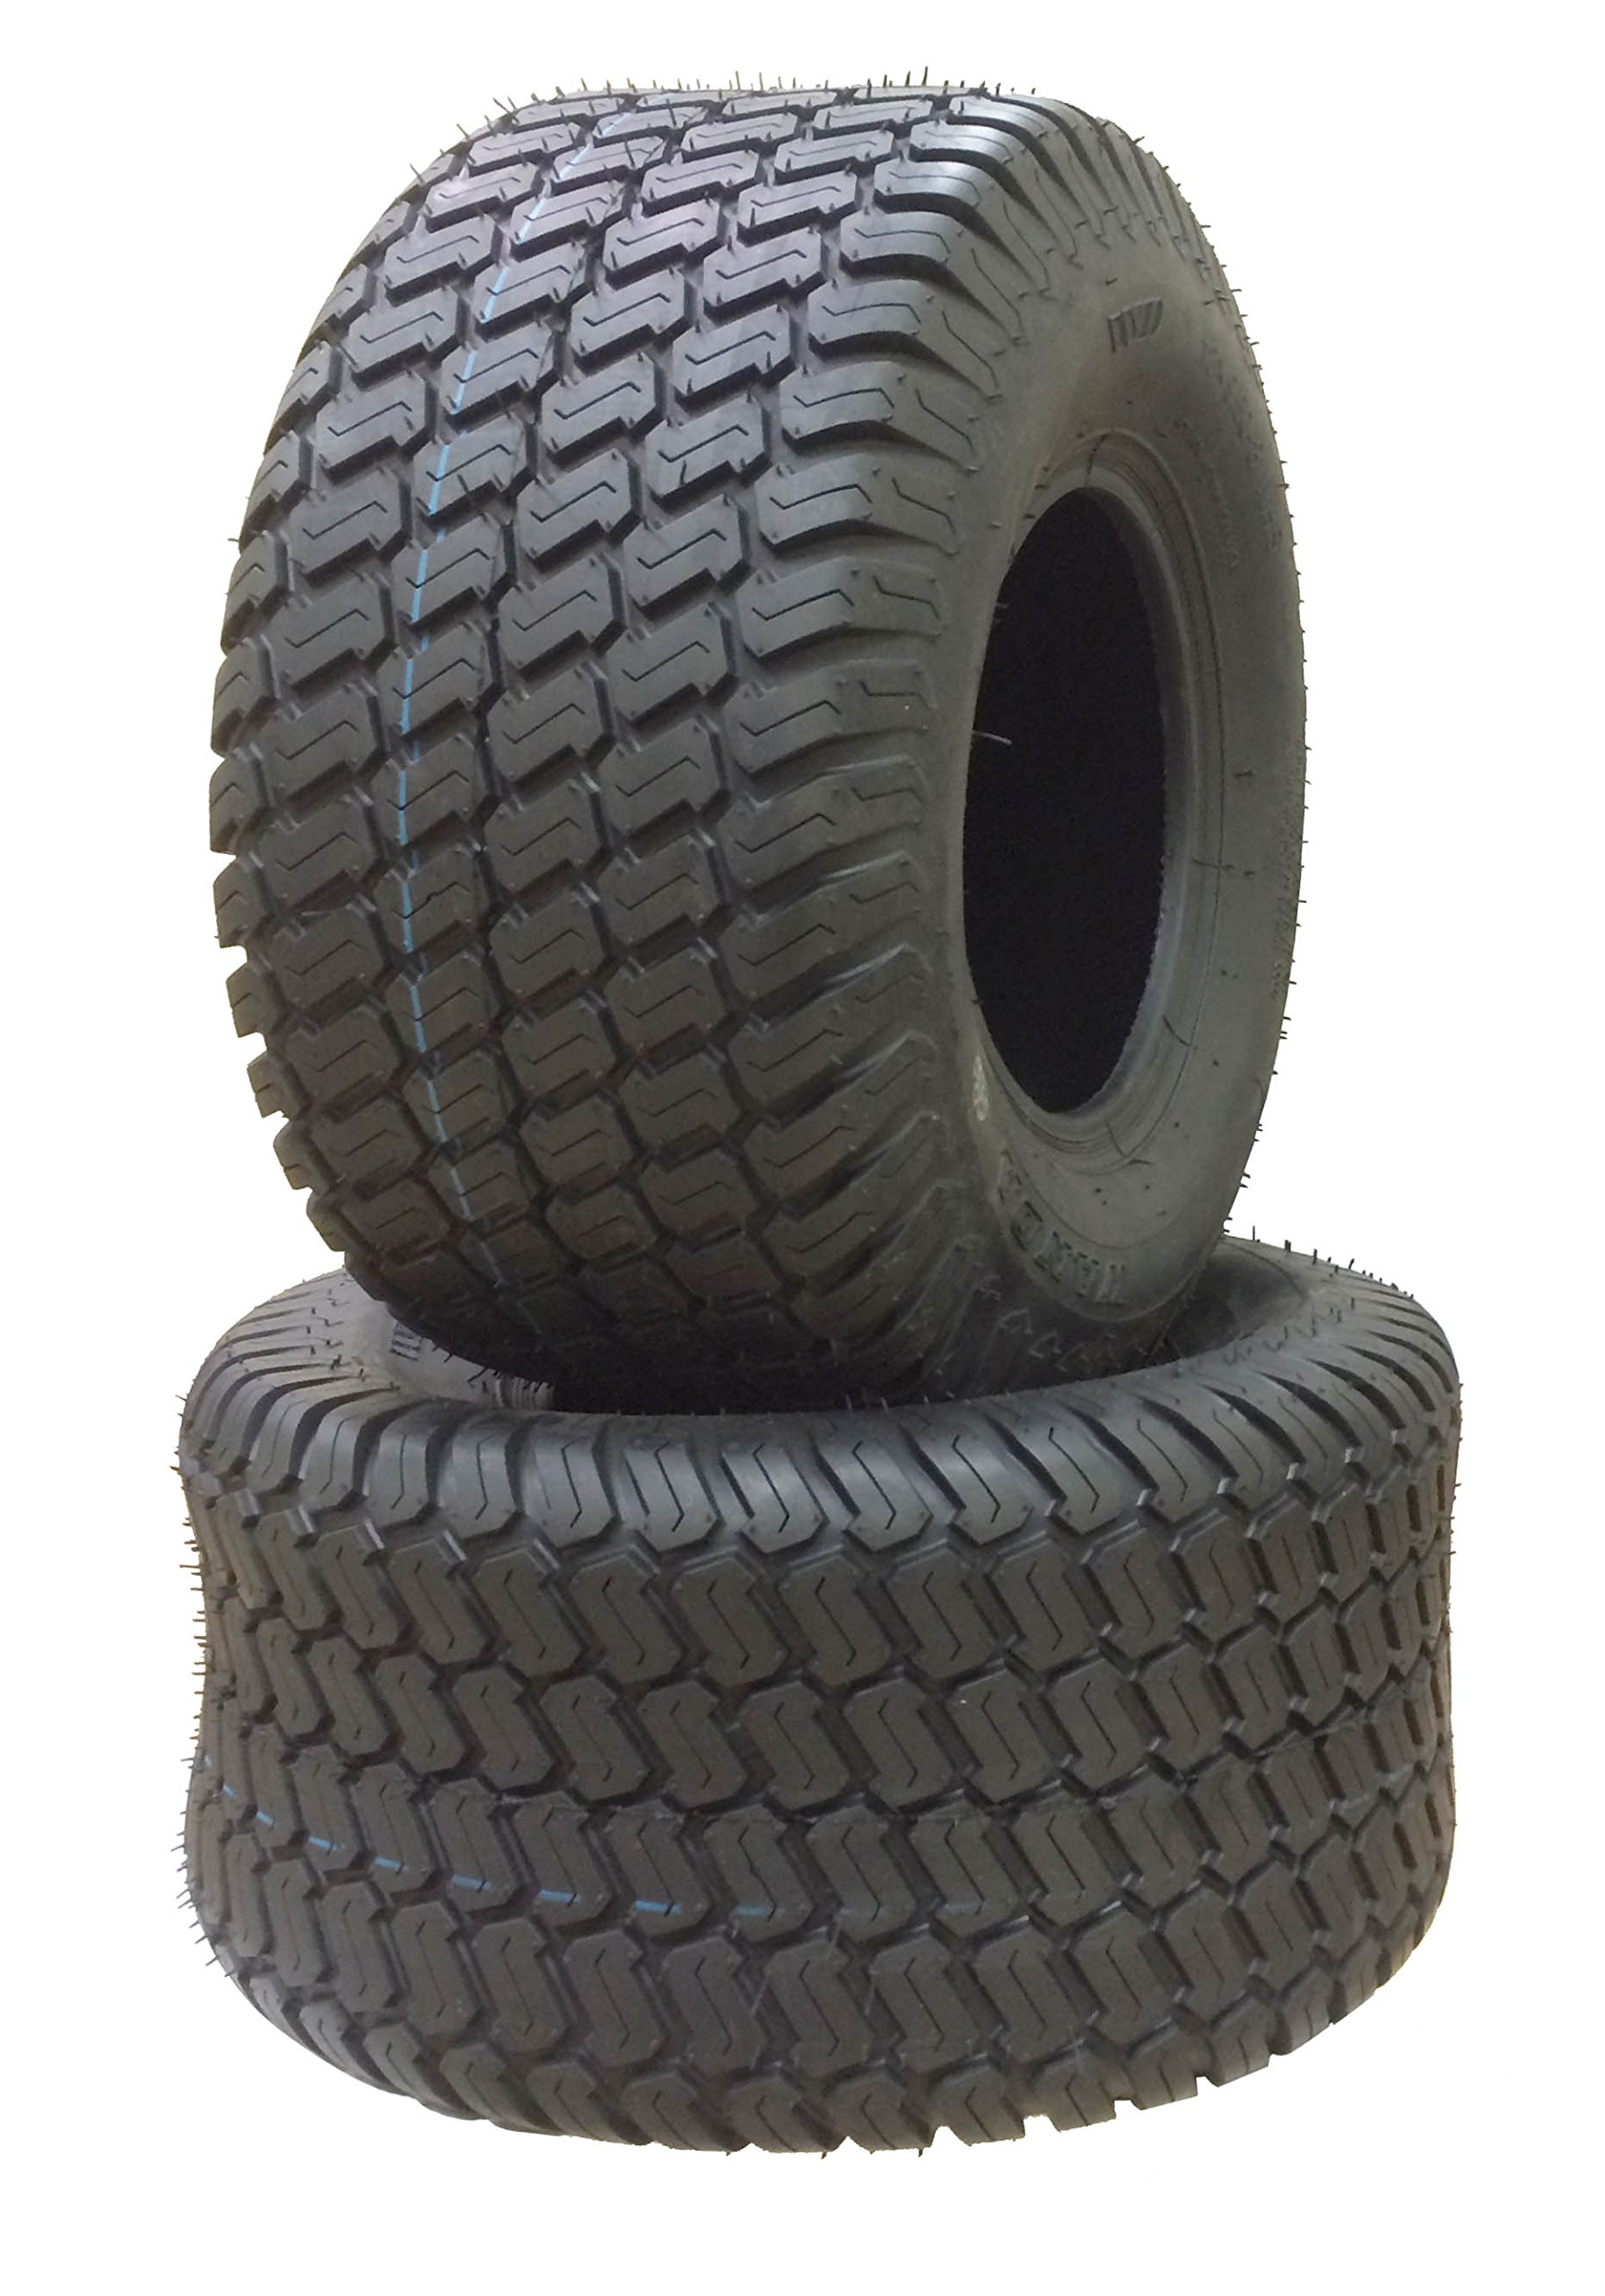 2 New 18x9.50-8 Lawn Mower Utility Cart Turf Tires P332 -13032 by Wanda (Image #1)